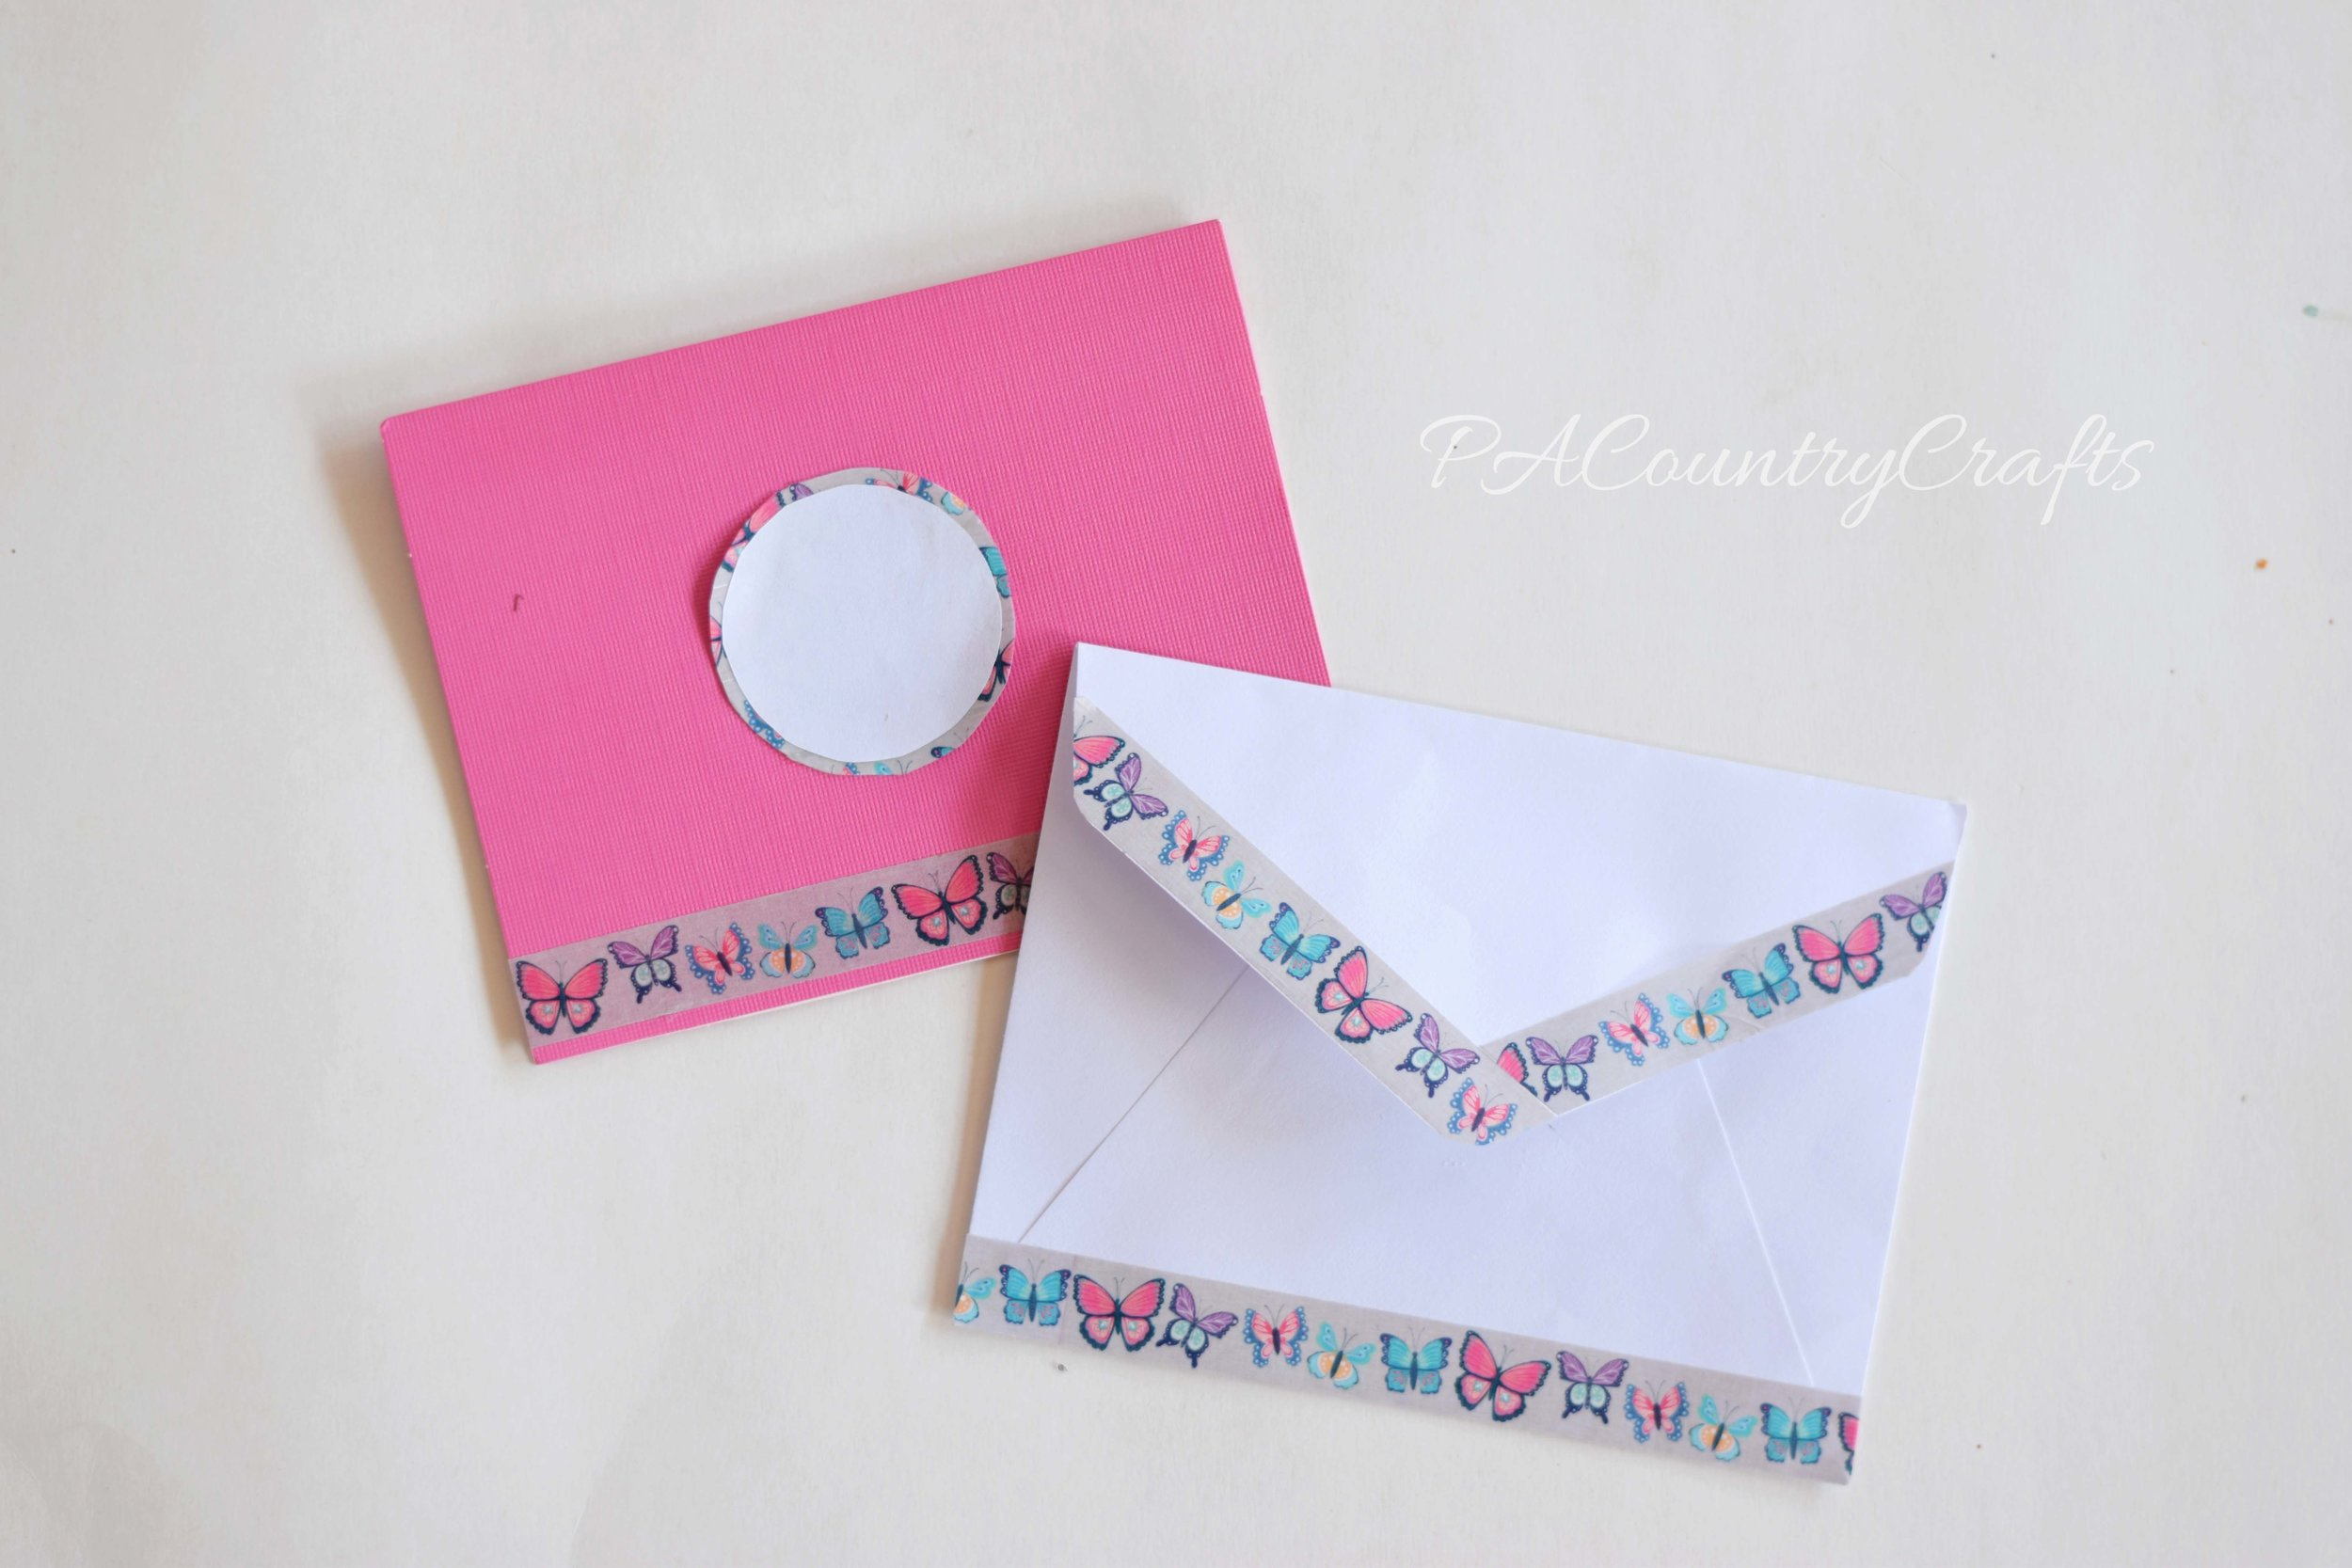 Use washi tape to decorate envelopes!